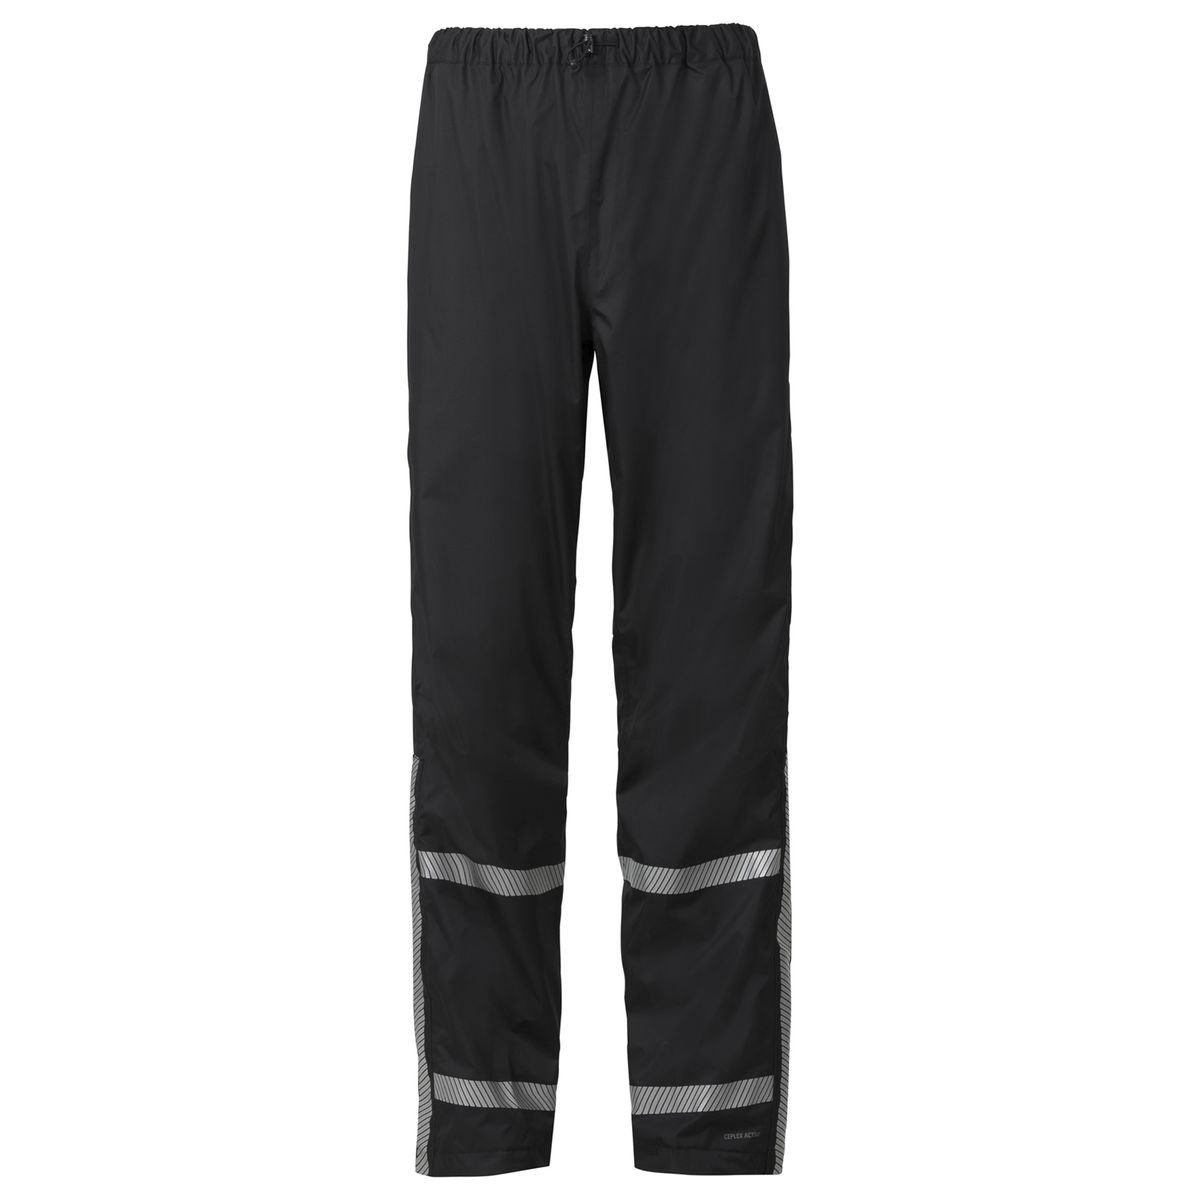 LUMINUM waterproof trousers